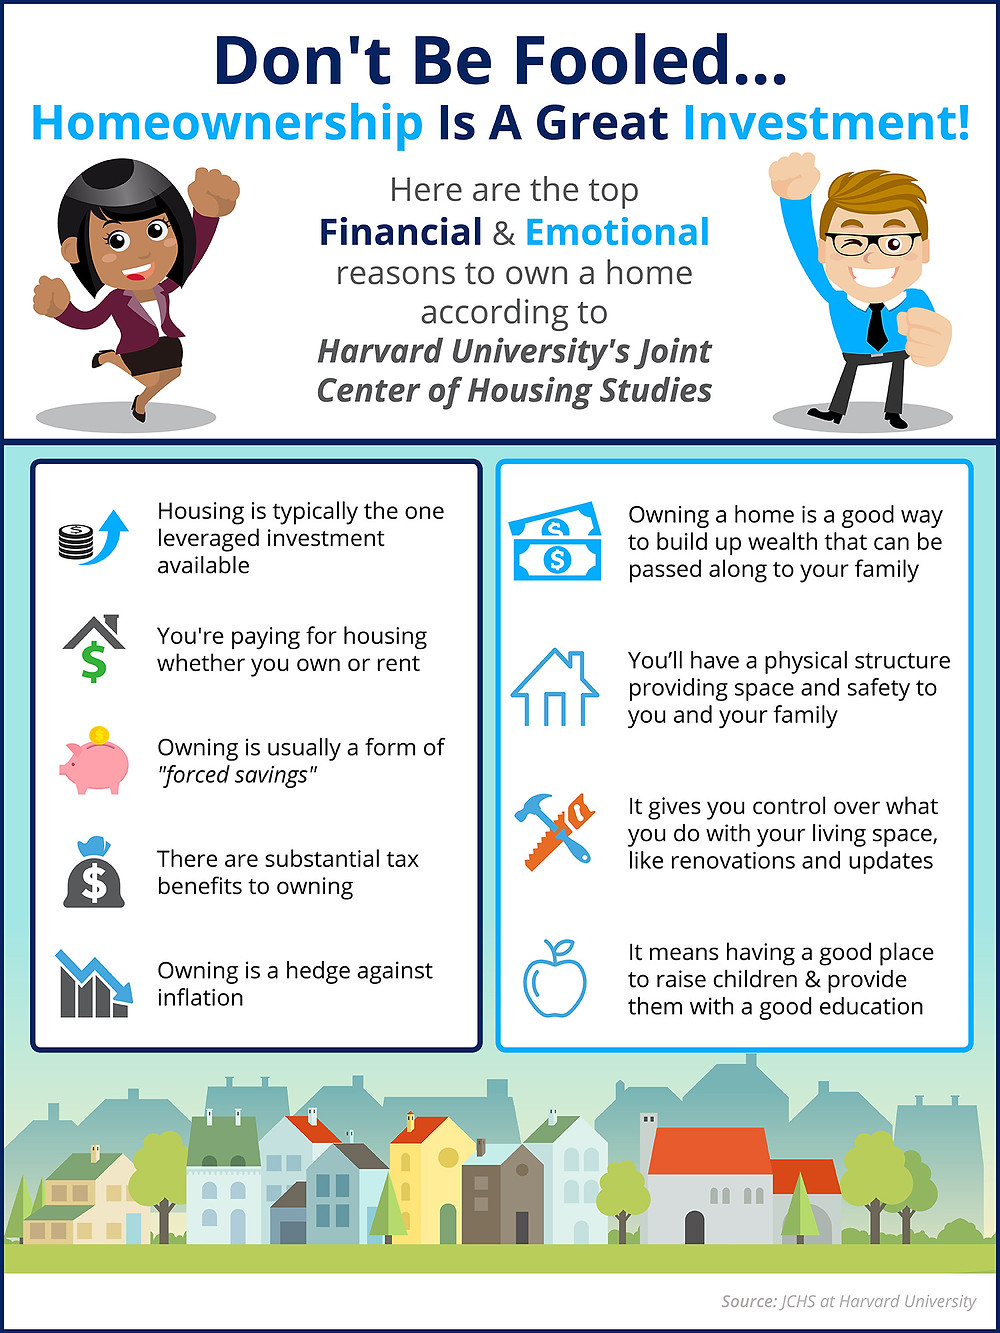 Don't Be Fooled... Homeownership Is A Great Investment! [INFOGRAPHIC]   Simplifying The Market